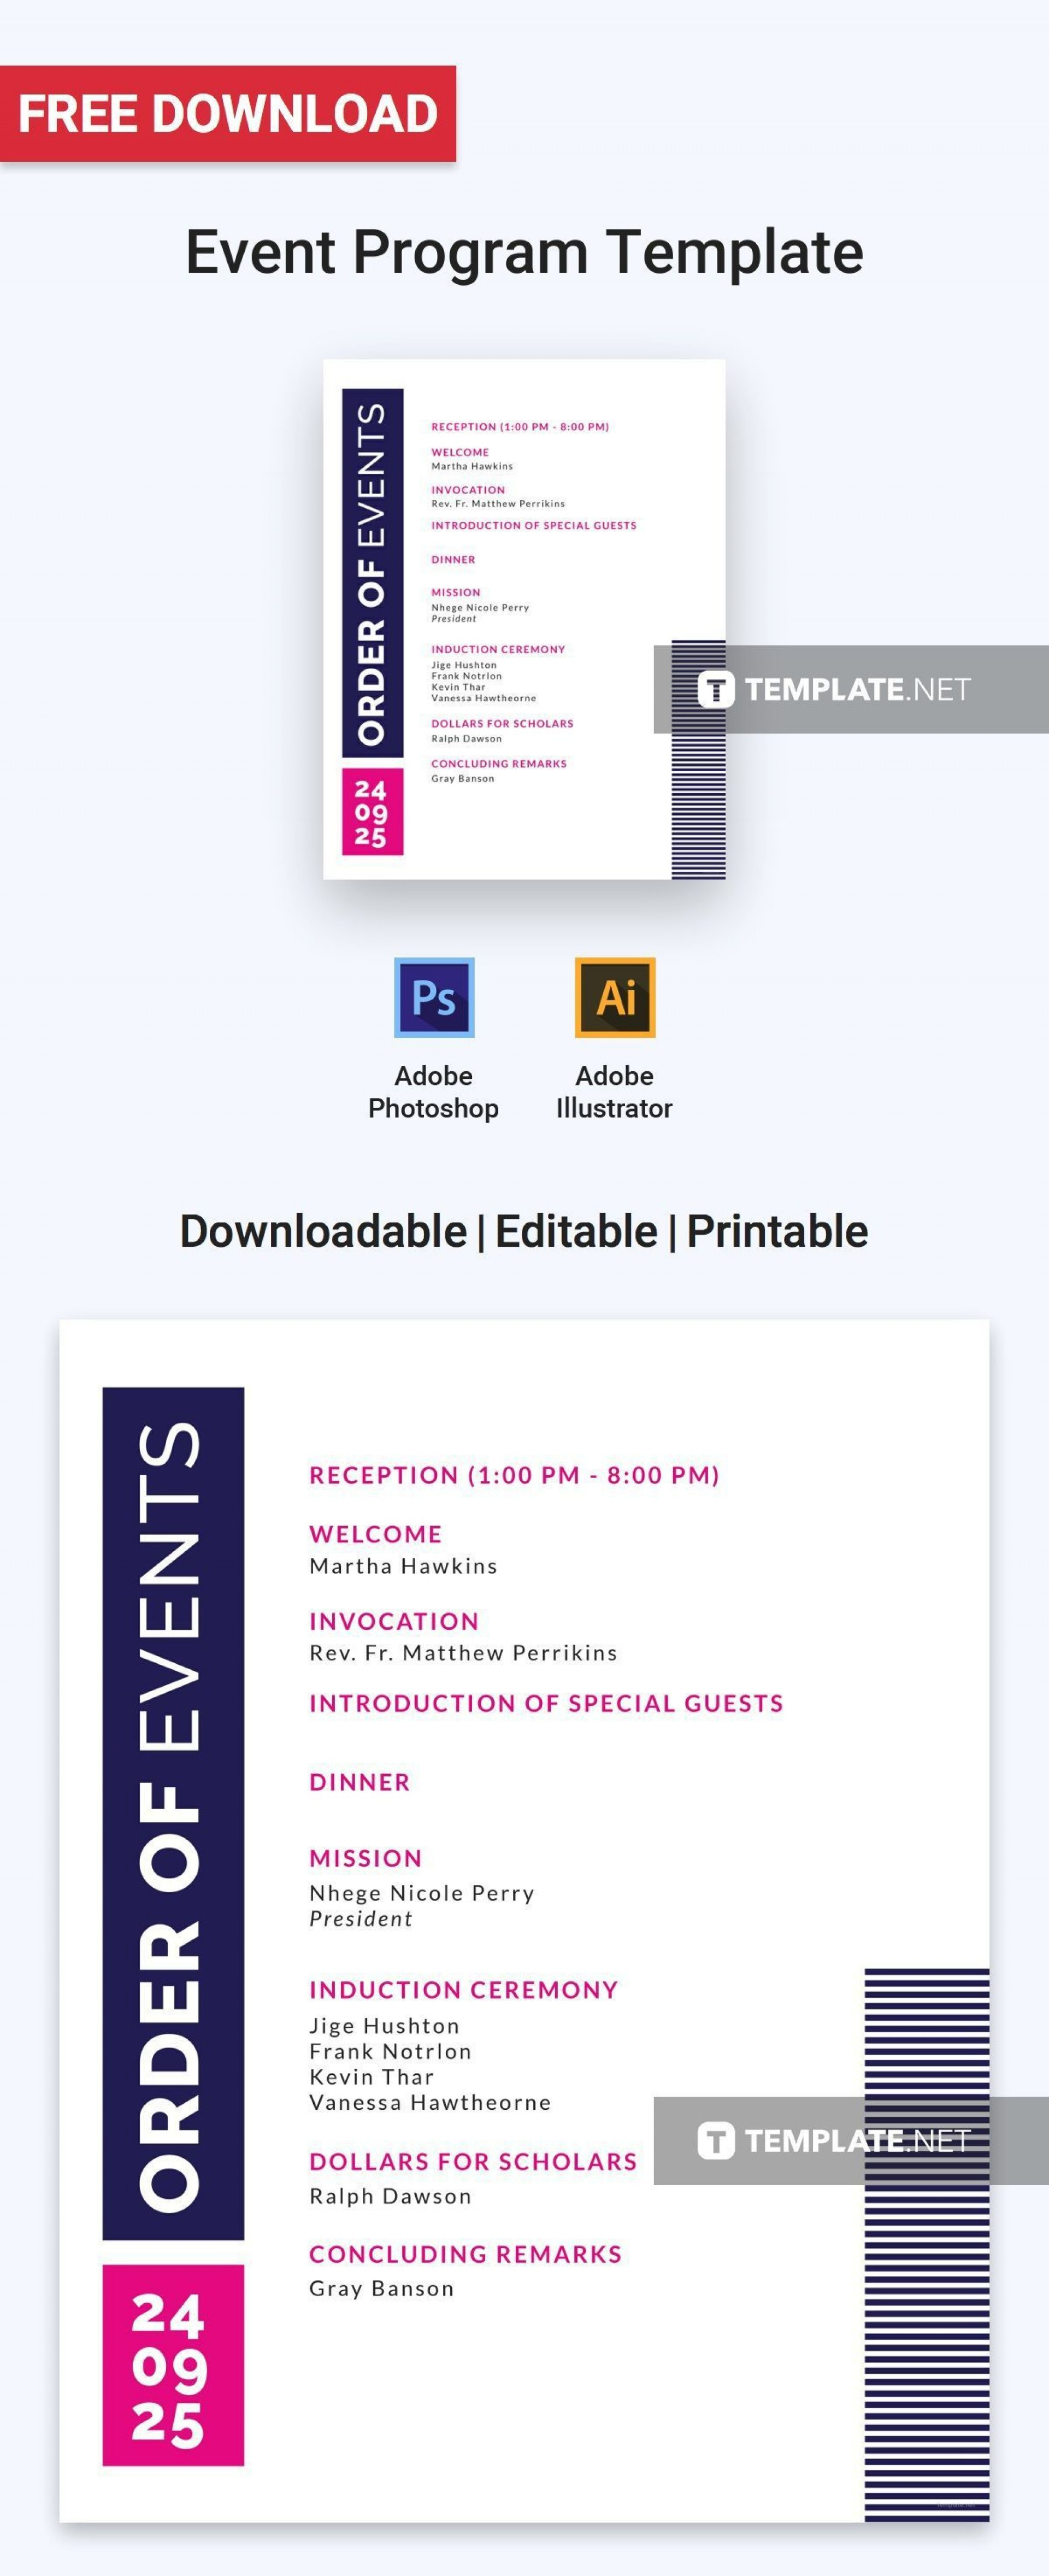 003 Magnificent Free Event Program Template Inspiration  Schedule Psd Word1920